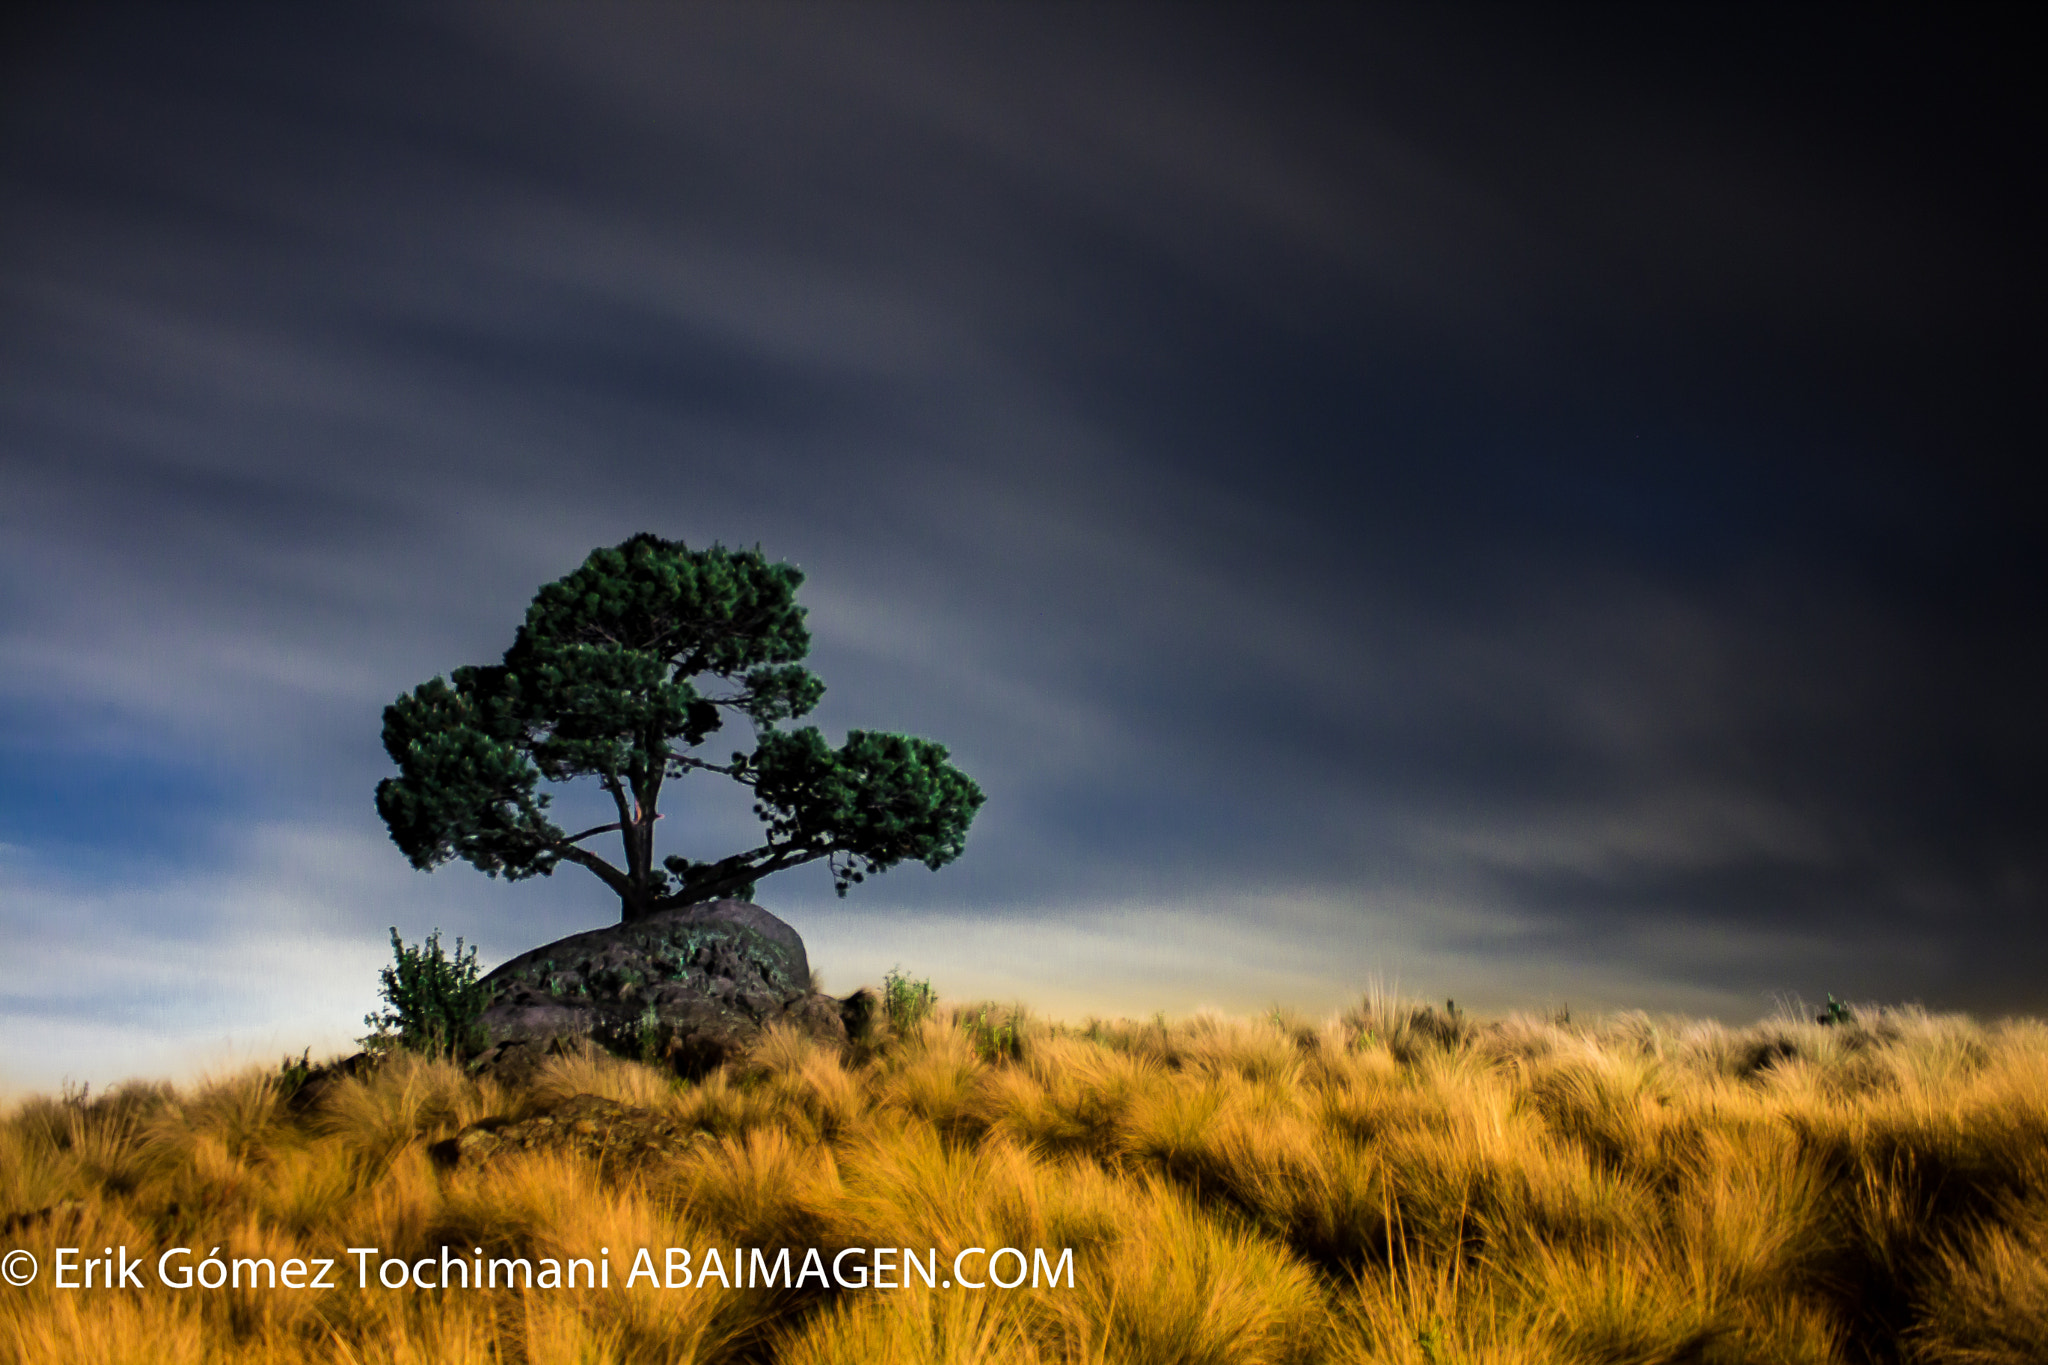 Photograph Tree in the nigth by Erik Gómez Tochimani on 500px